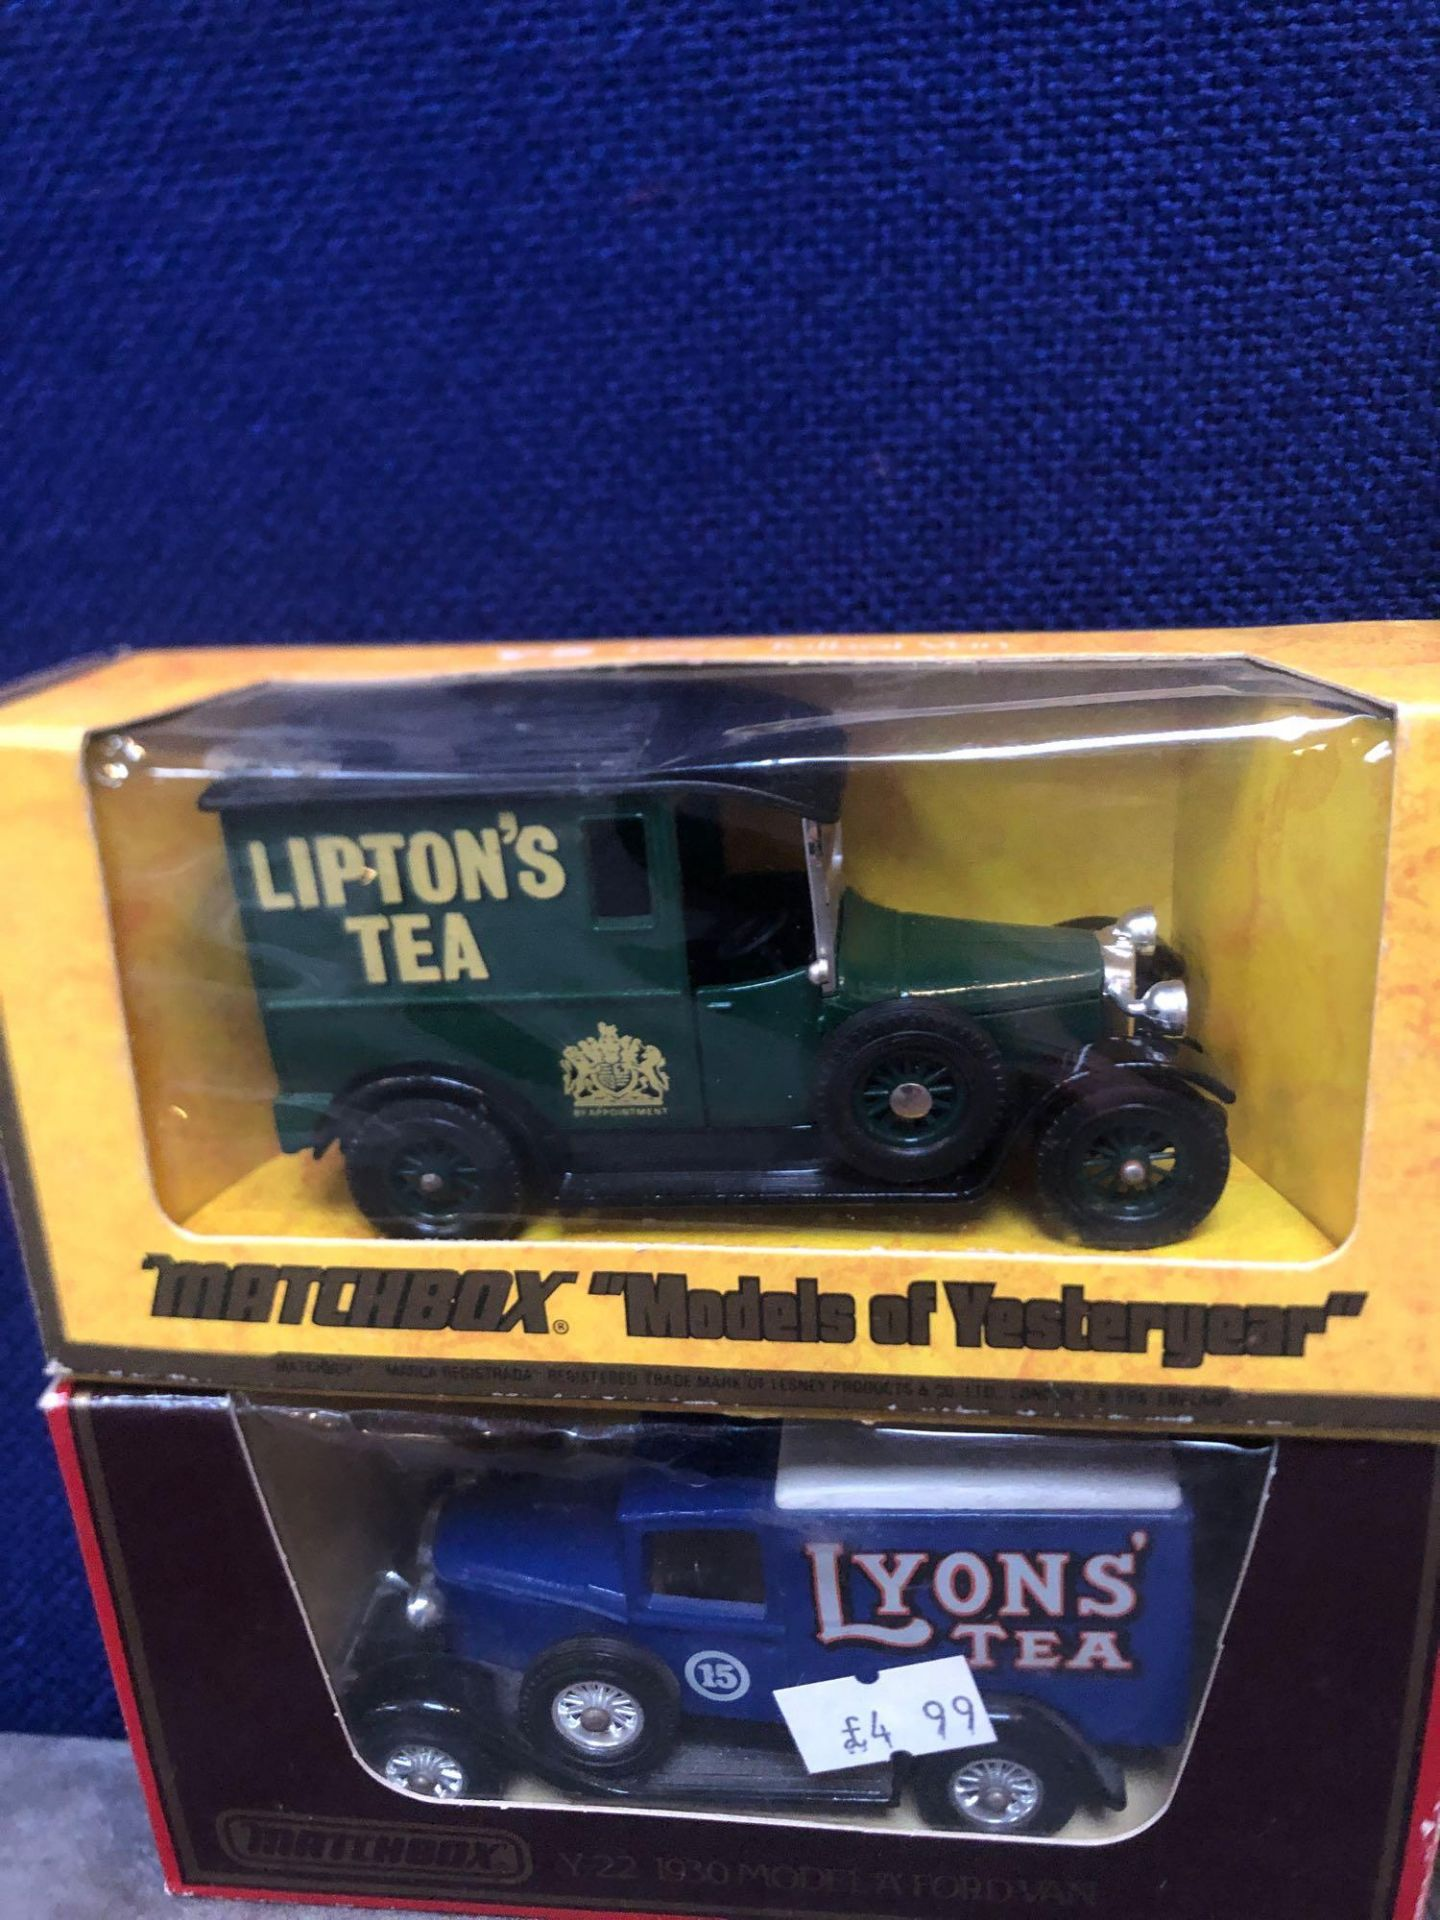 7x Diecast Vehicles Advertising Tea, All In Individual Boxes - Image 4 of 4